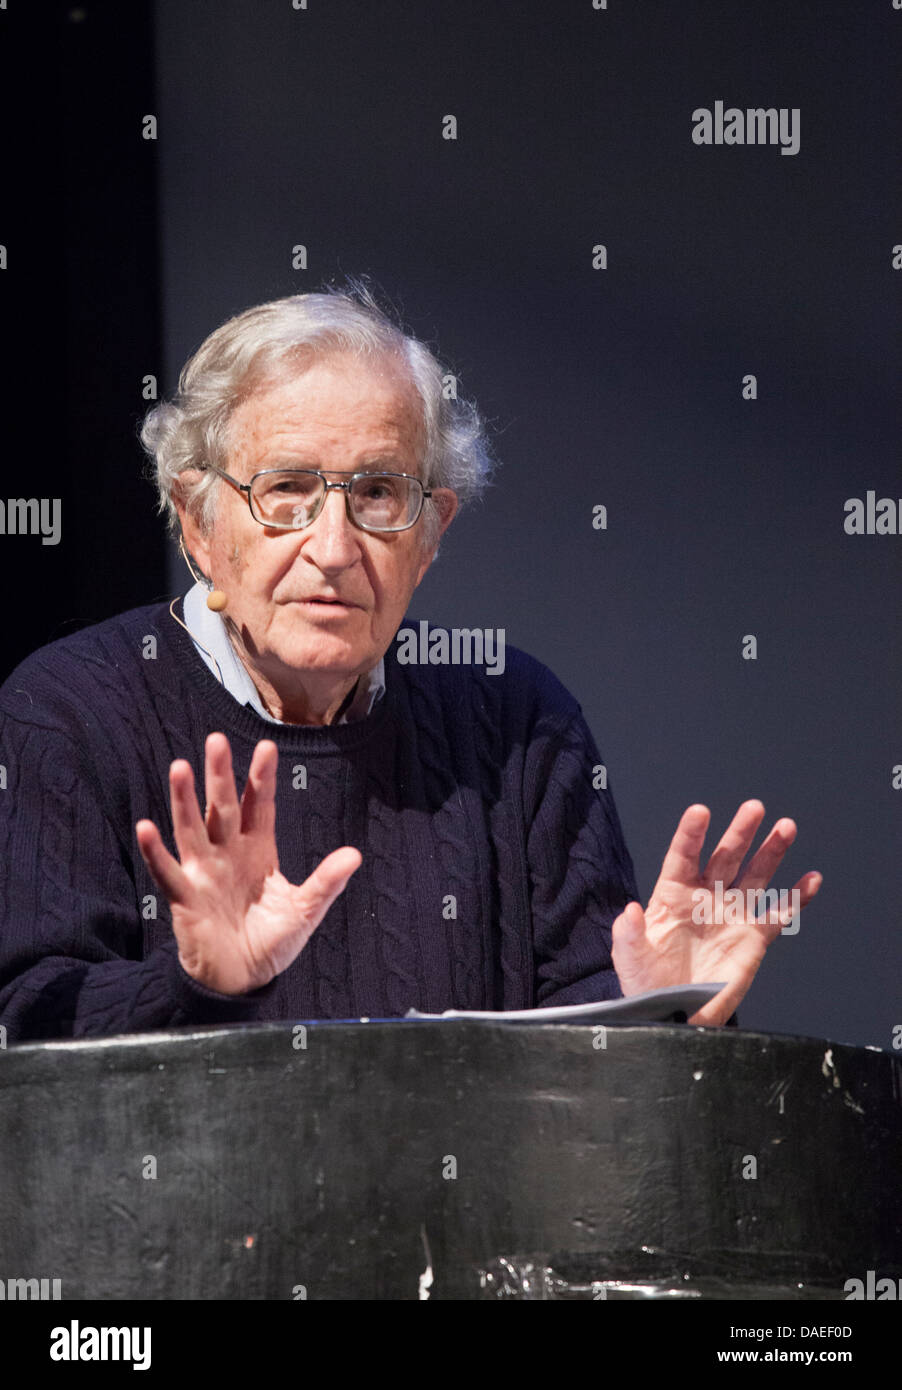 noam chomsky stock photos noam chomsky stock images alamy american intellectual noam chomsky stock image